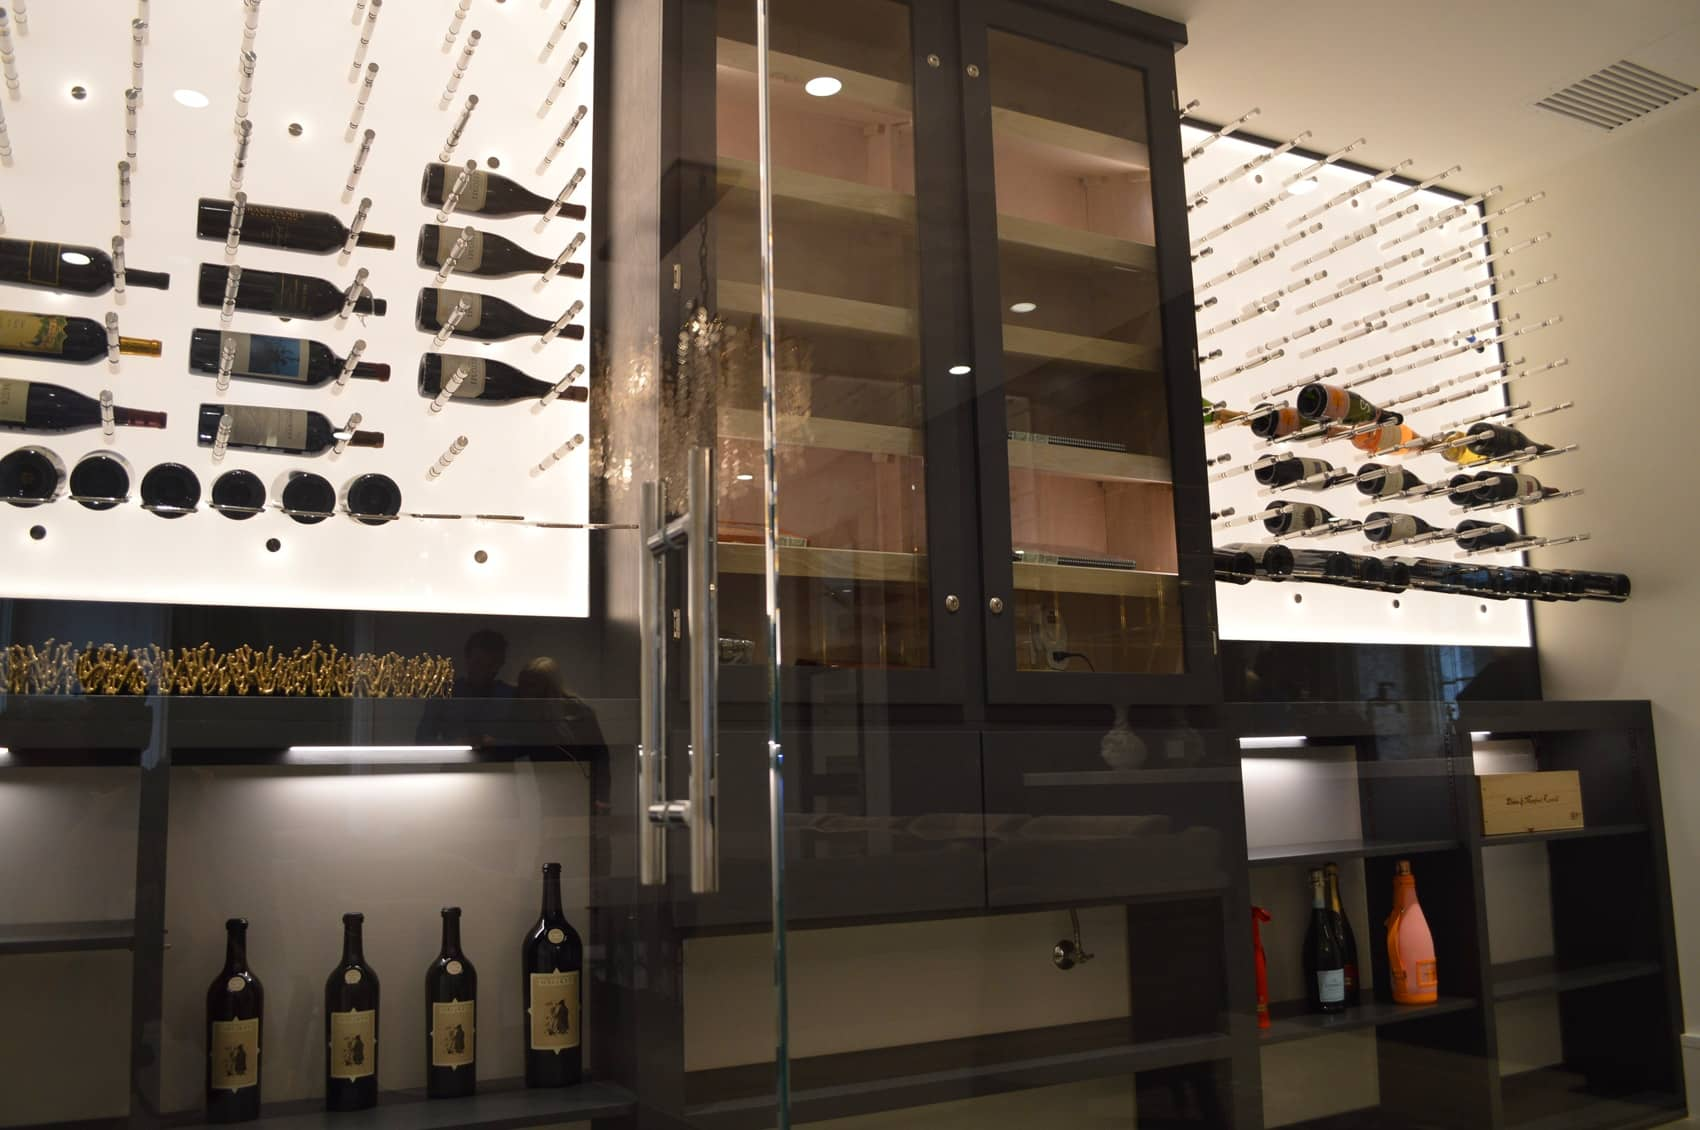 Aside from the wine pegs, wine shelves were also installed to increase the capacity of the wine cellar.